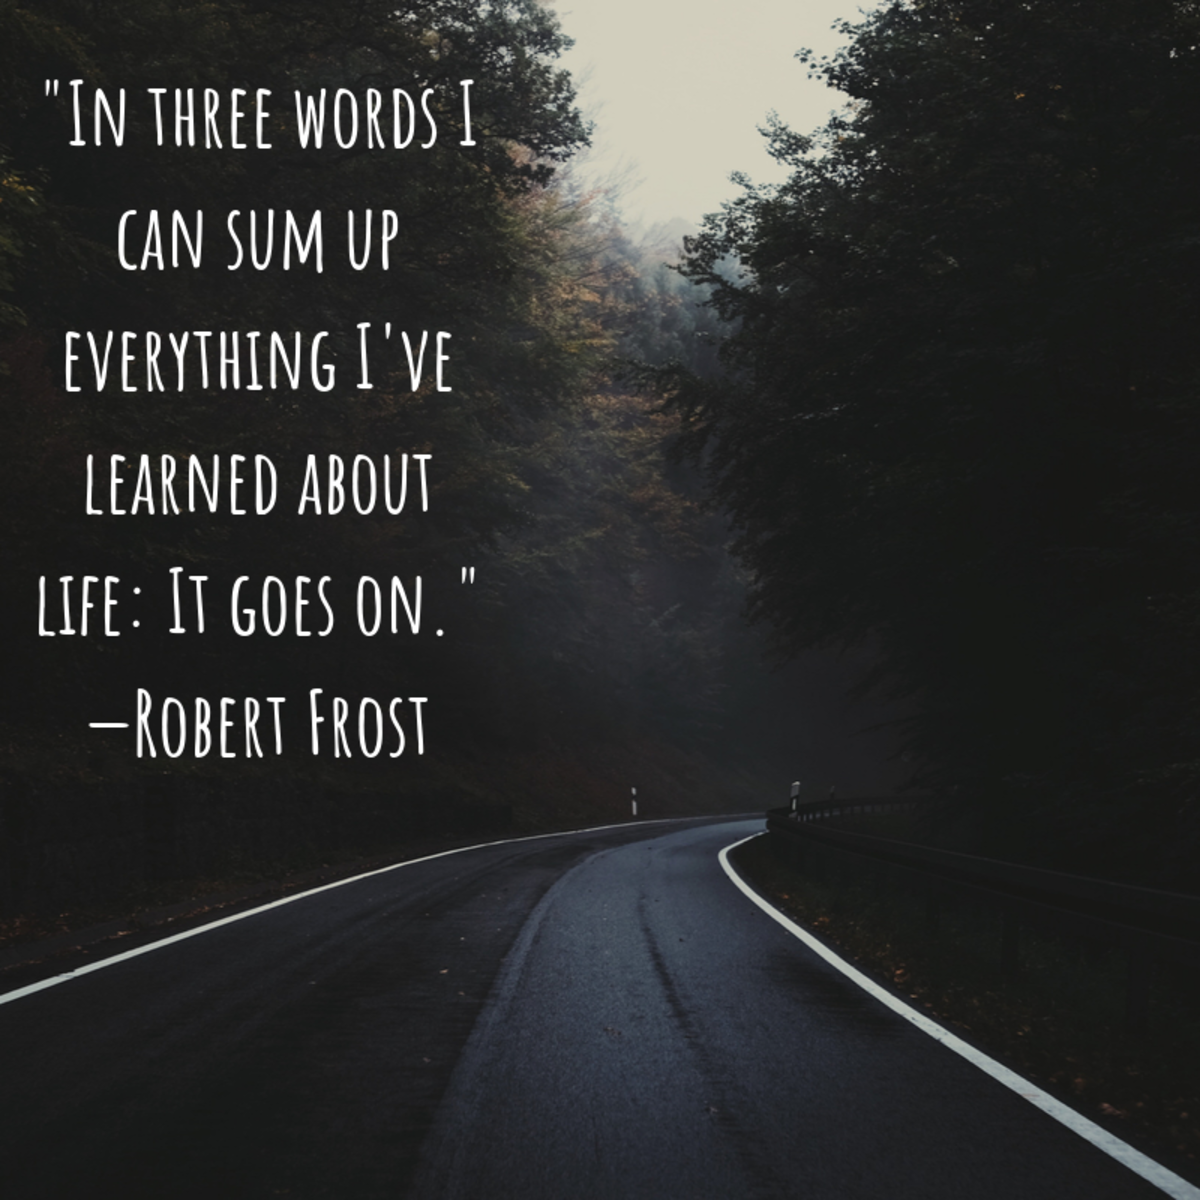 """""""In three words I can sum up everything I've learned about life: It goes on."""" —Robert Frost"""